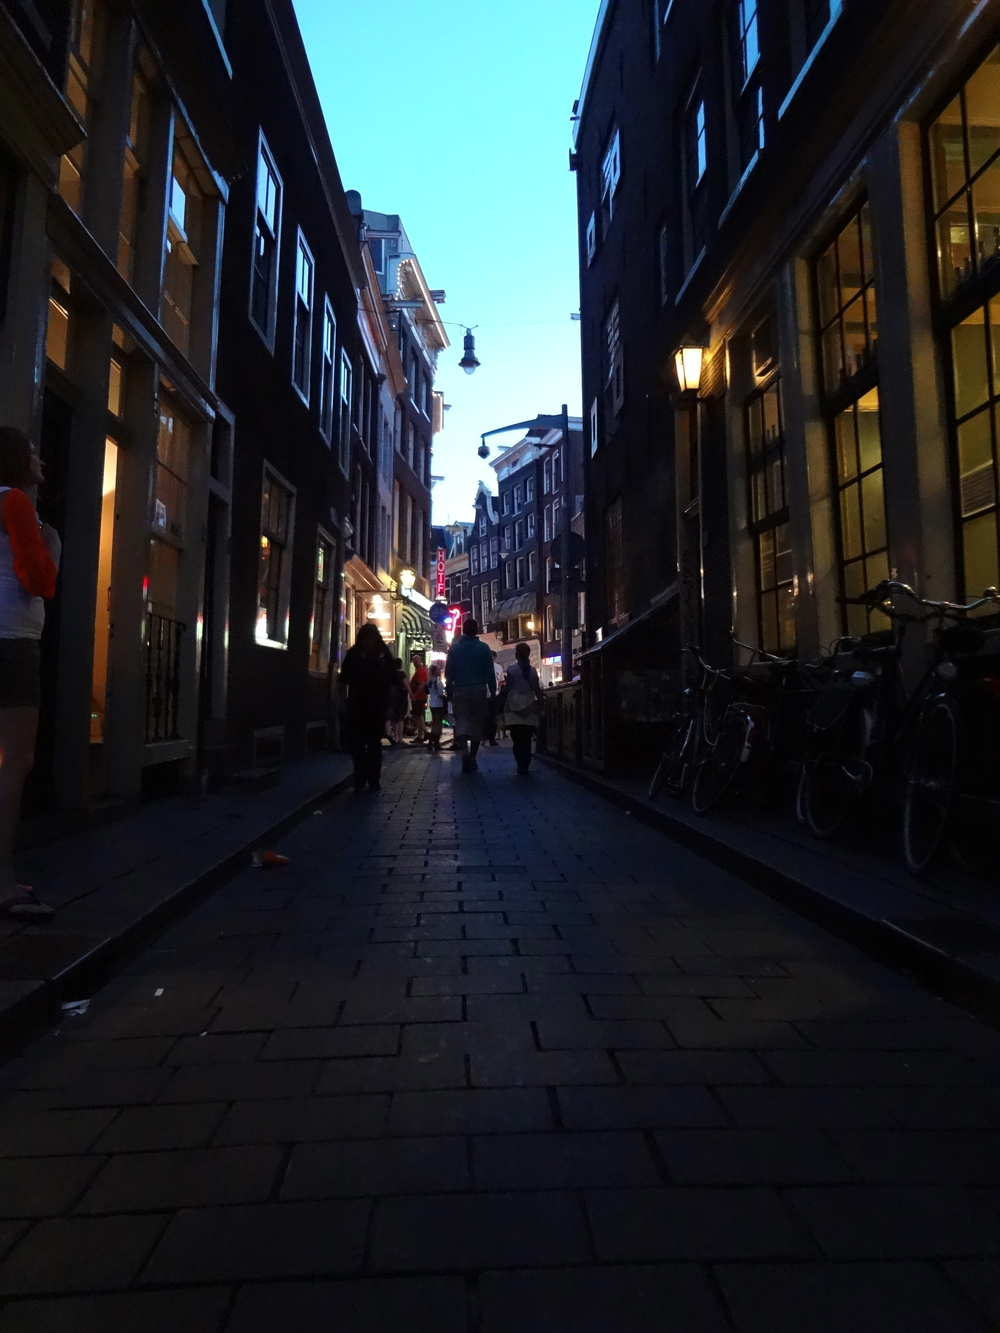 Amsterdam; not far from the red light district